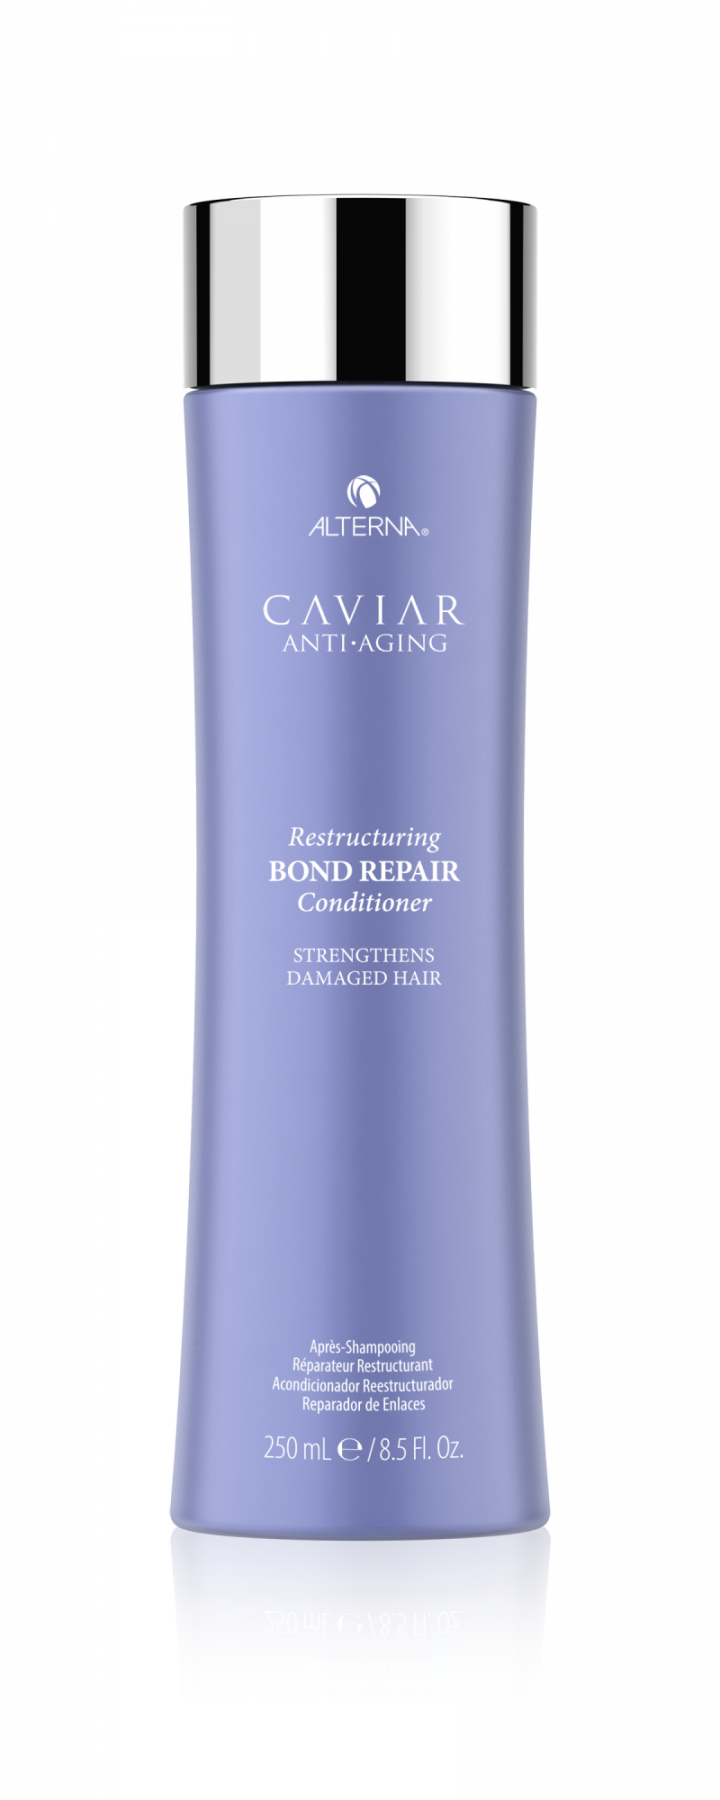 Caviar Anti-Aging RESTRUCTURING BOND REPAIR Conditioner